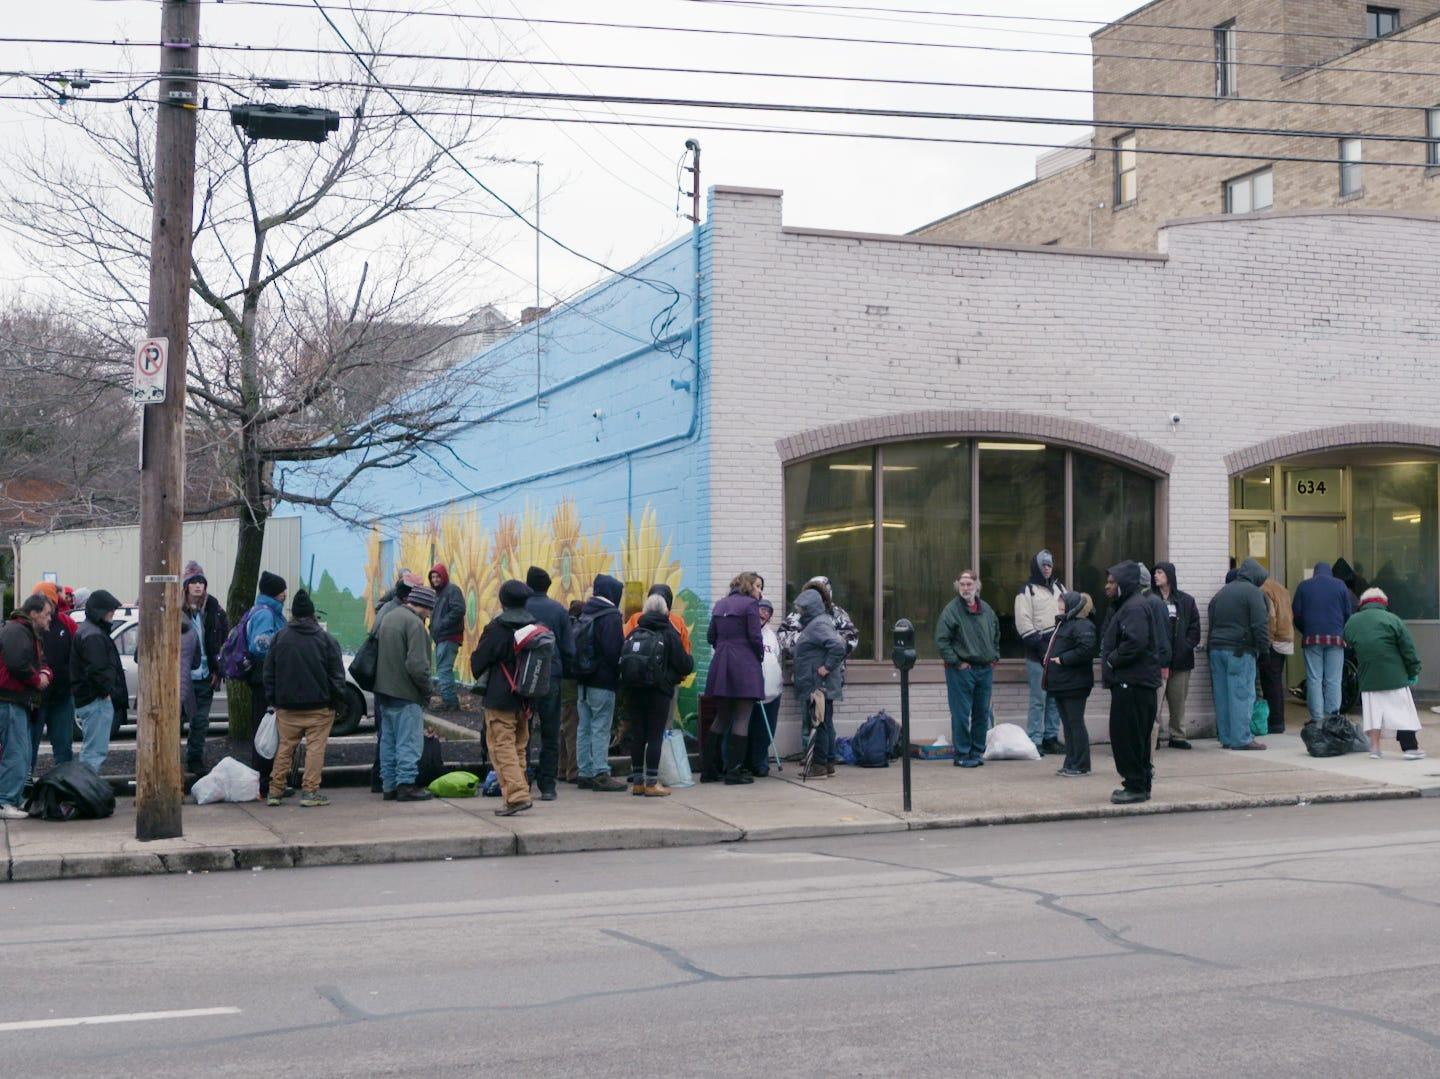 Guests line up during a cold February evening to get into the Emergency Shelter of Northern Kentucky in Covington.